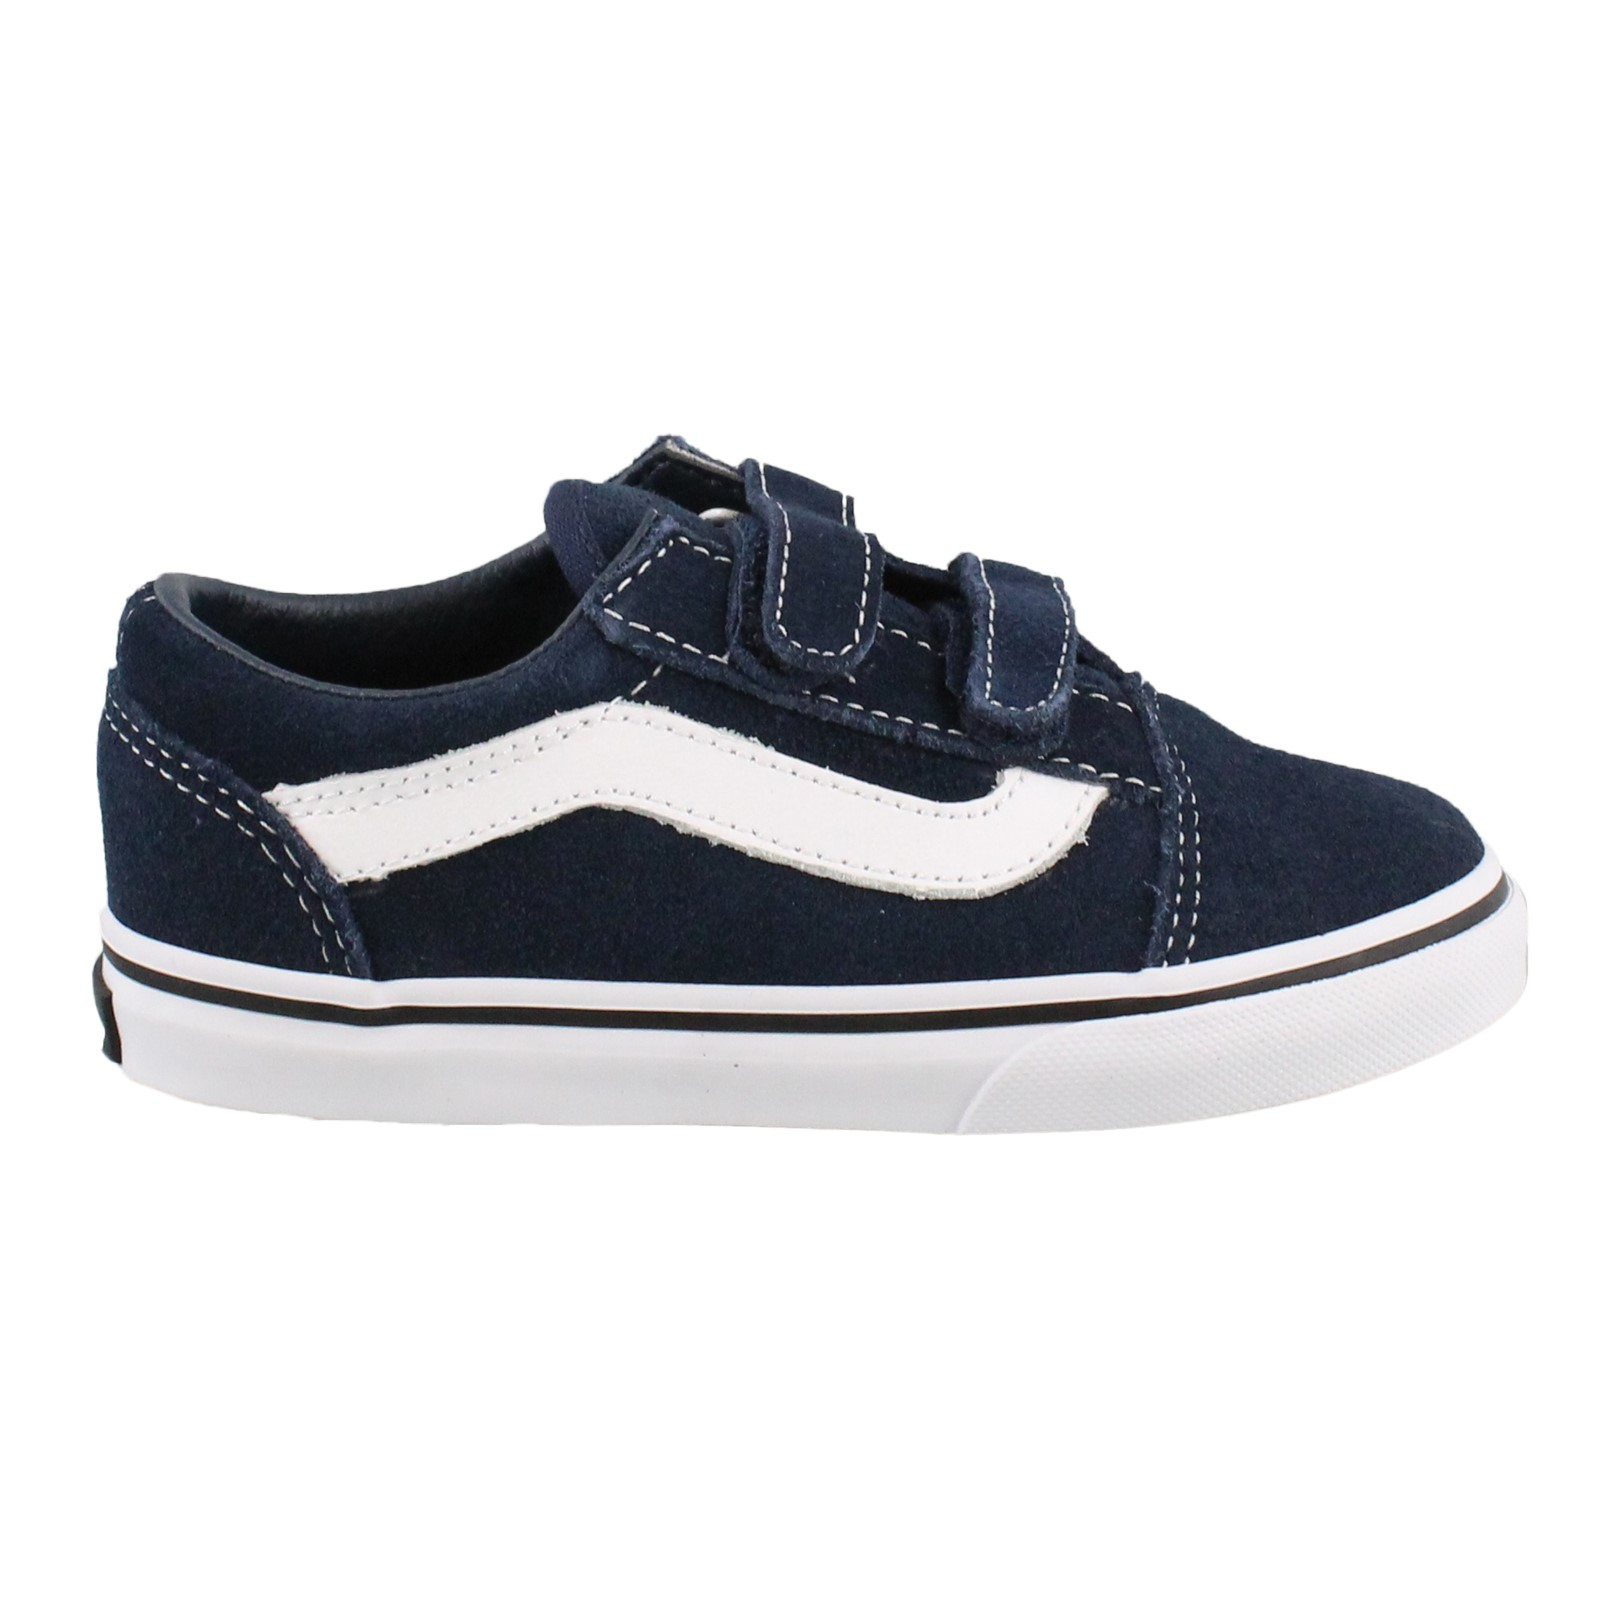 8bdd06b5bbec2 Infant s VANS FOOTWEAR